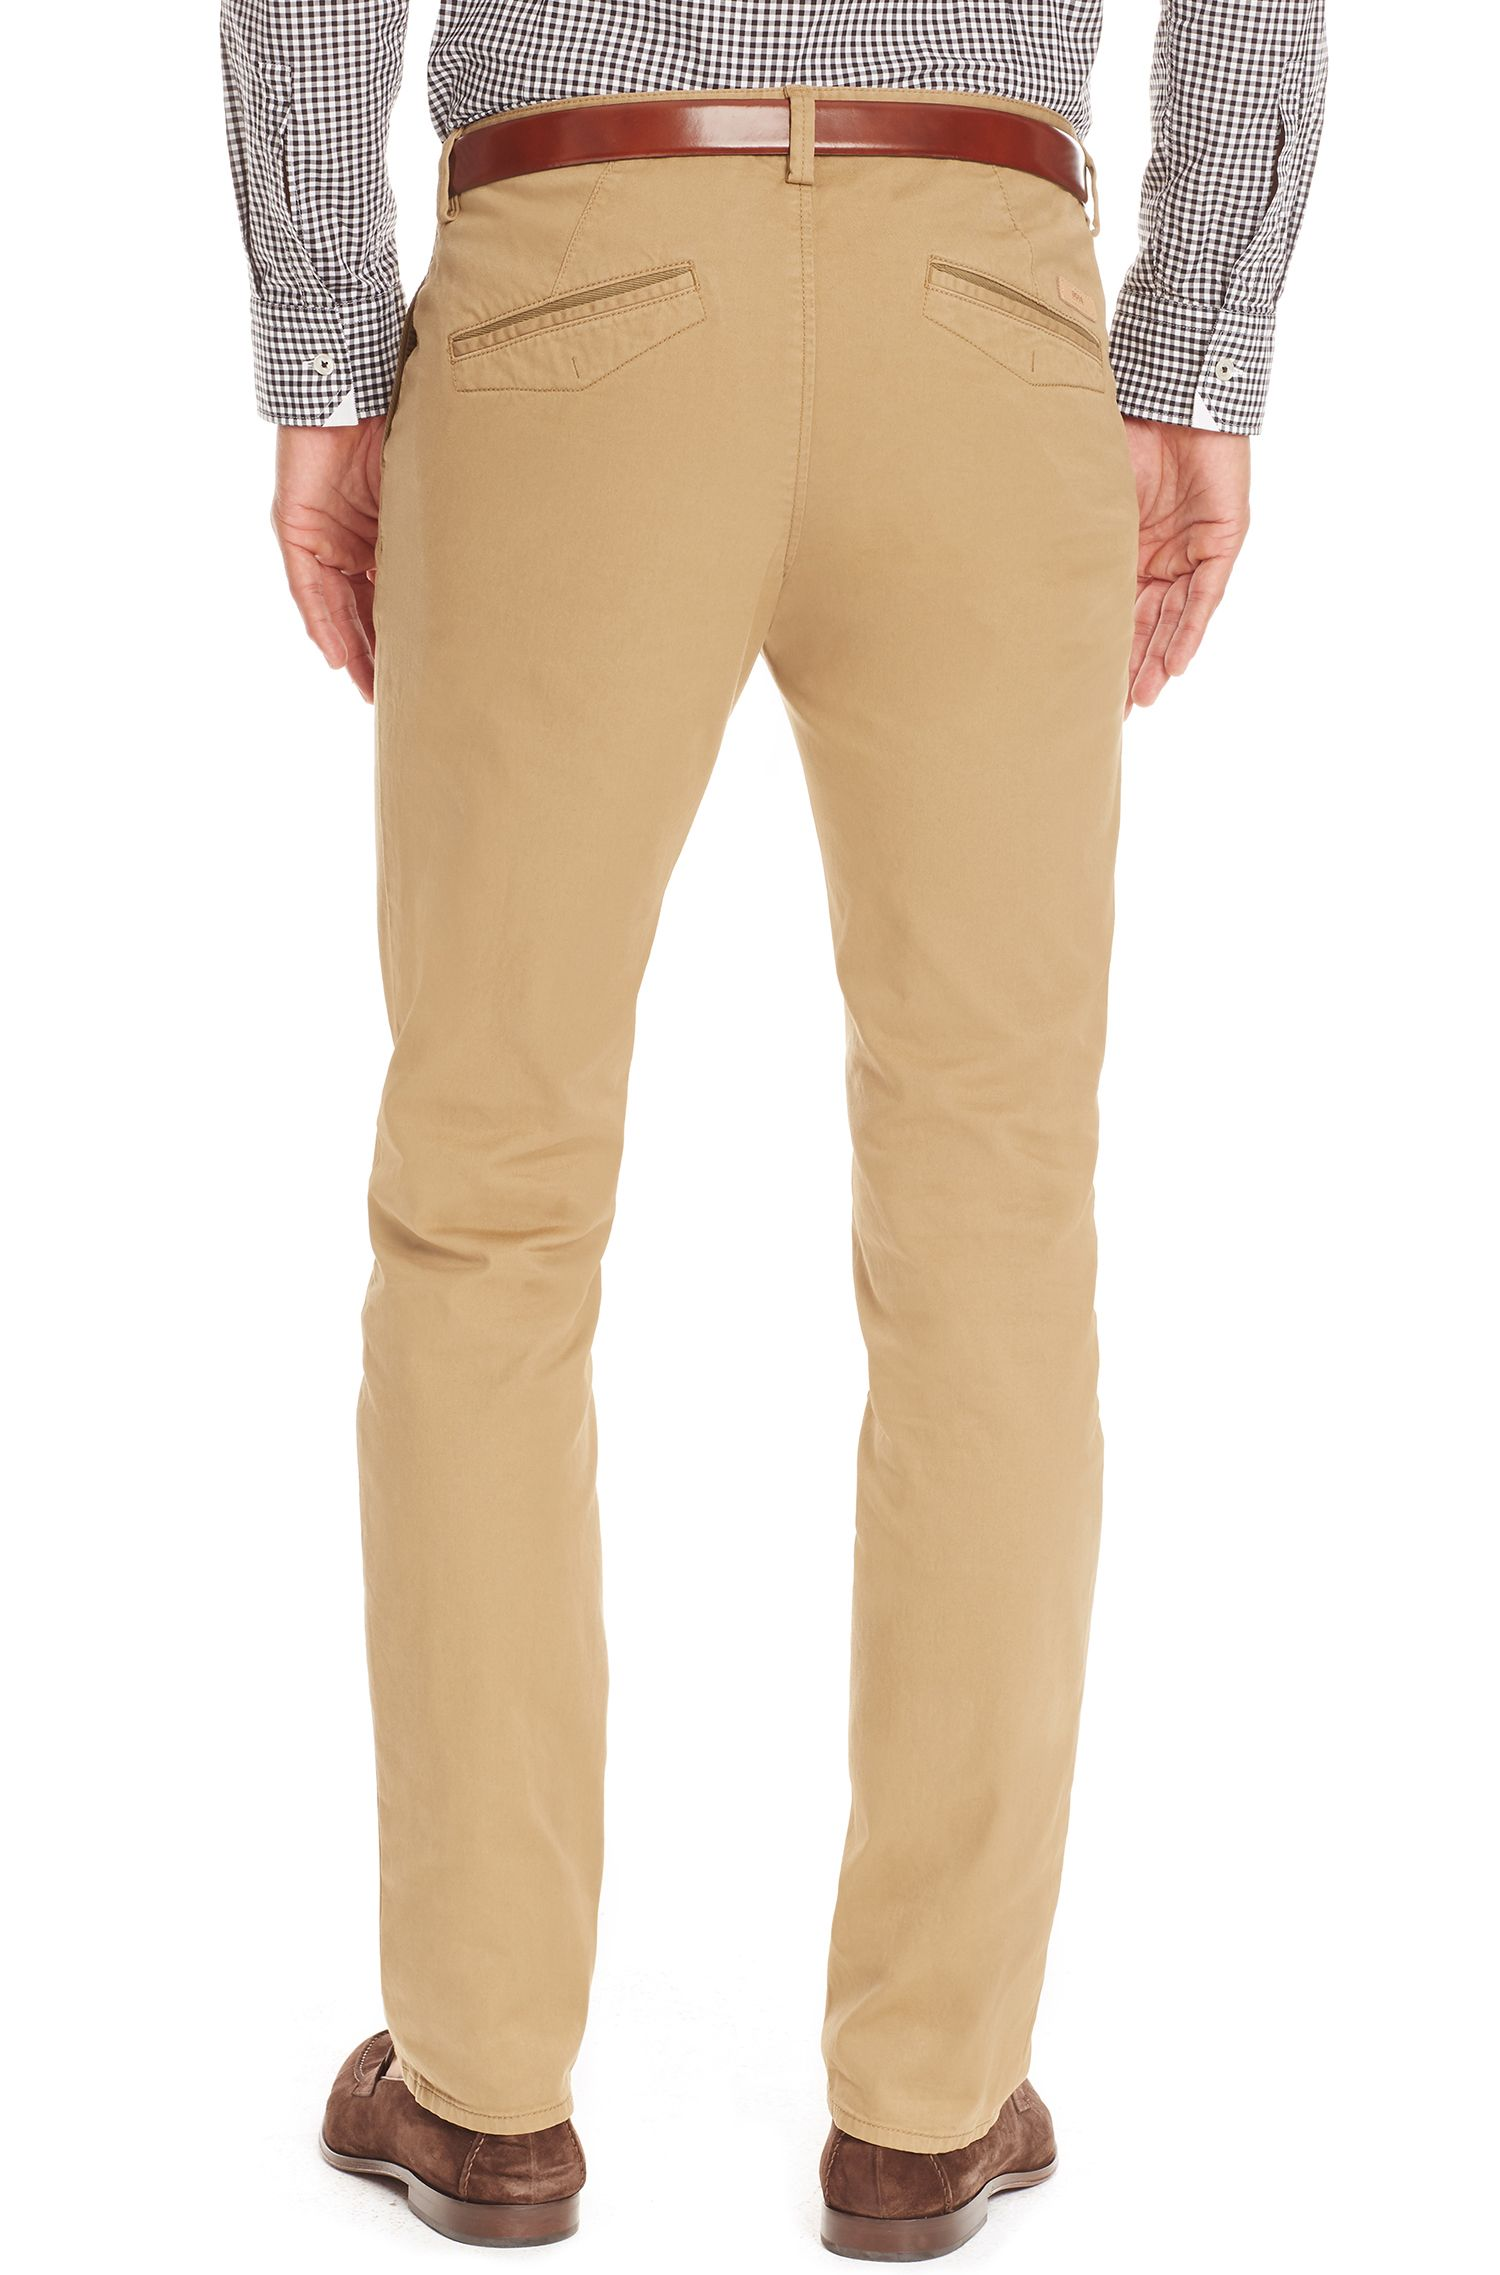 Stretch Cotton Colored Chino Pant, Slim Fit | Rice